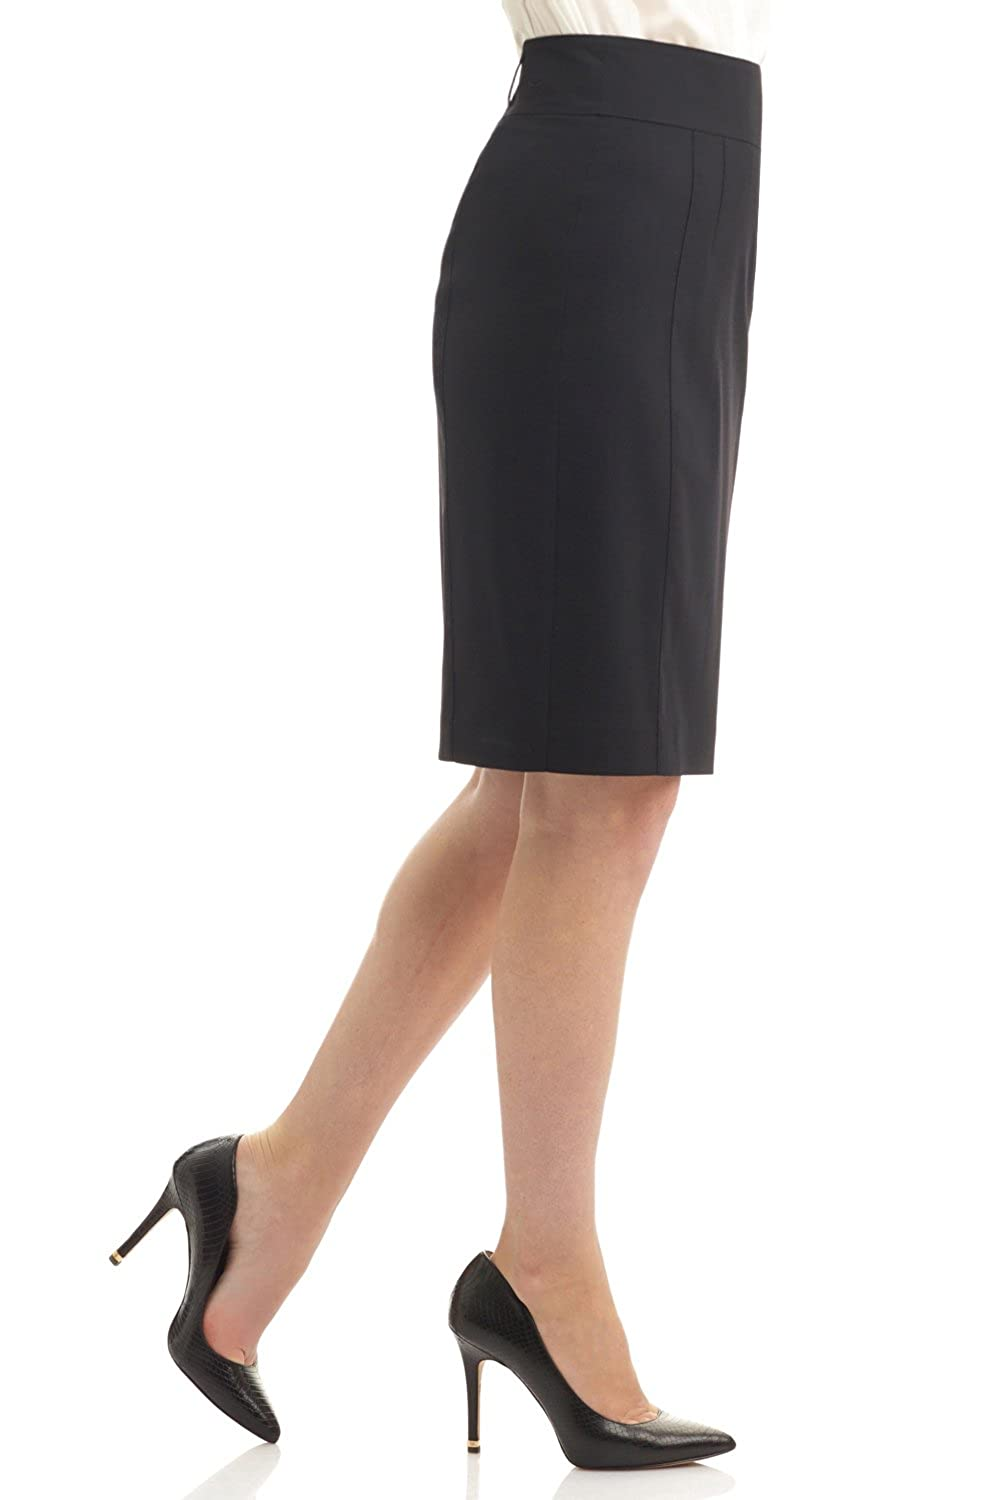 Rekucci Collection Womens Stretch Wool Pencil Skirt with Back Zip Detail